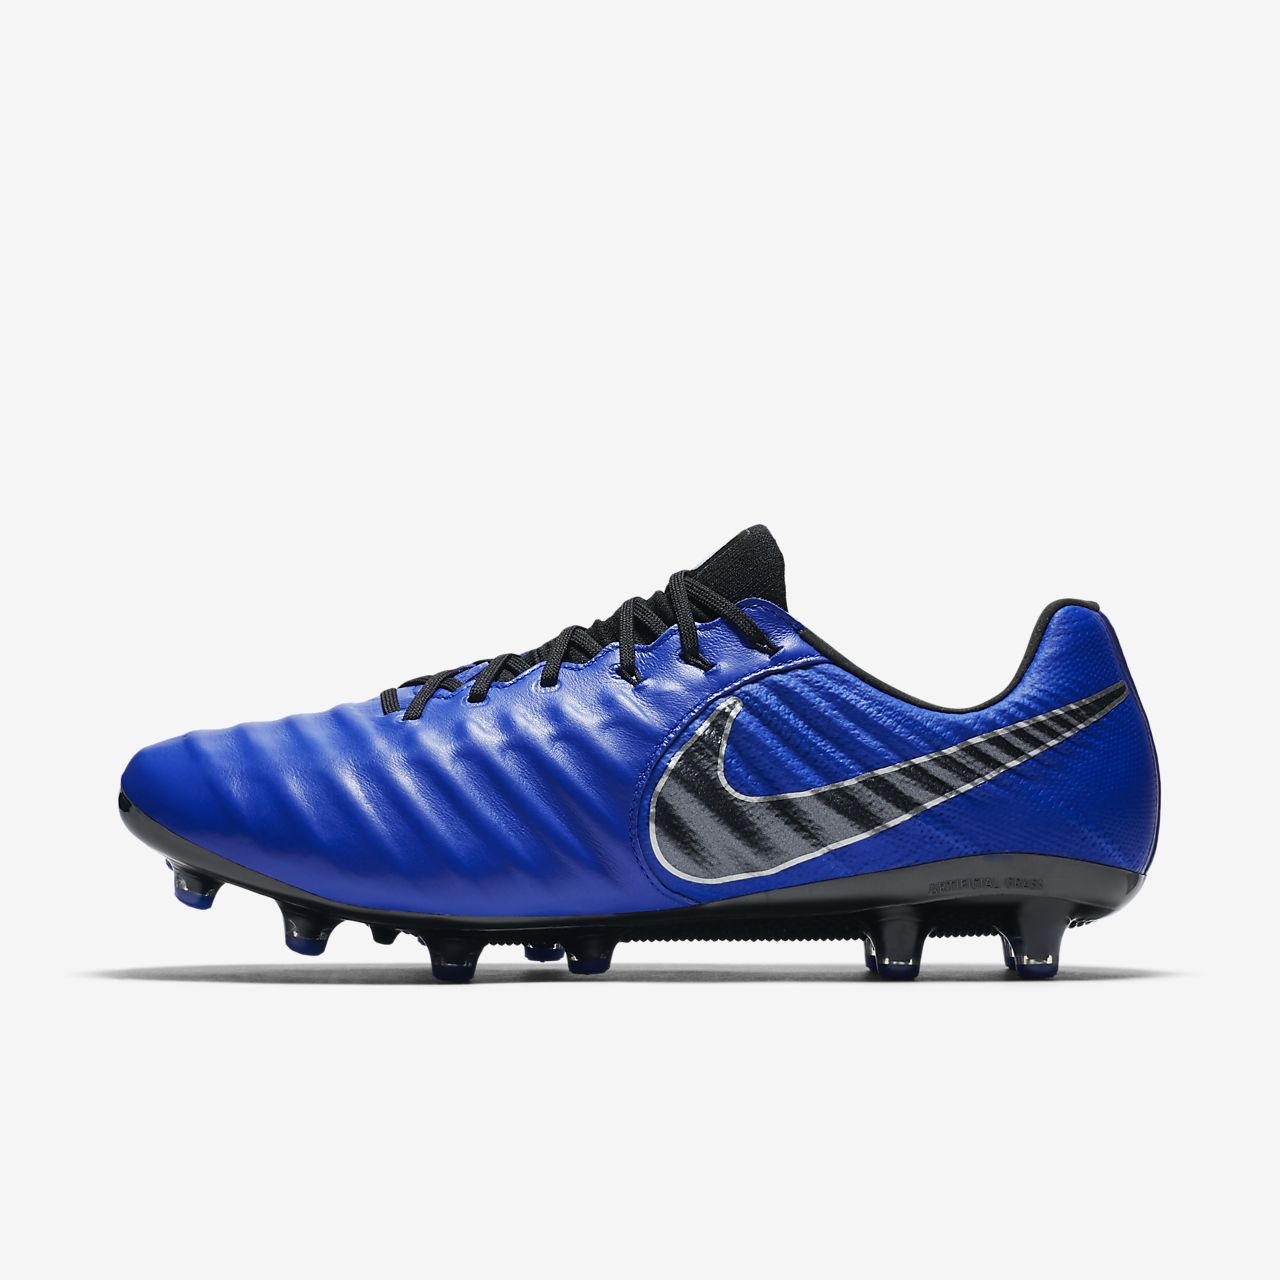 buy popular d6d06 6eae3 legend-vii-elite-ag-pro-football-boot-ct8m15.jpg